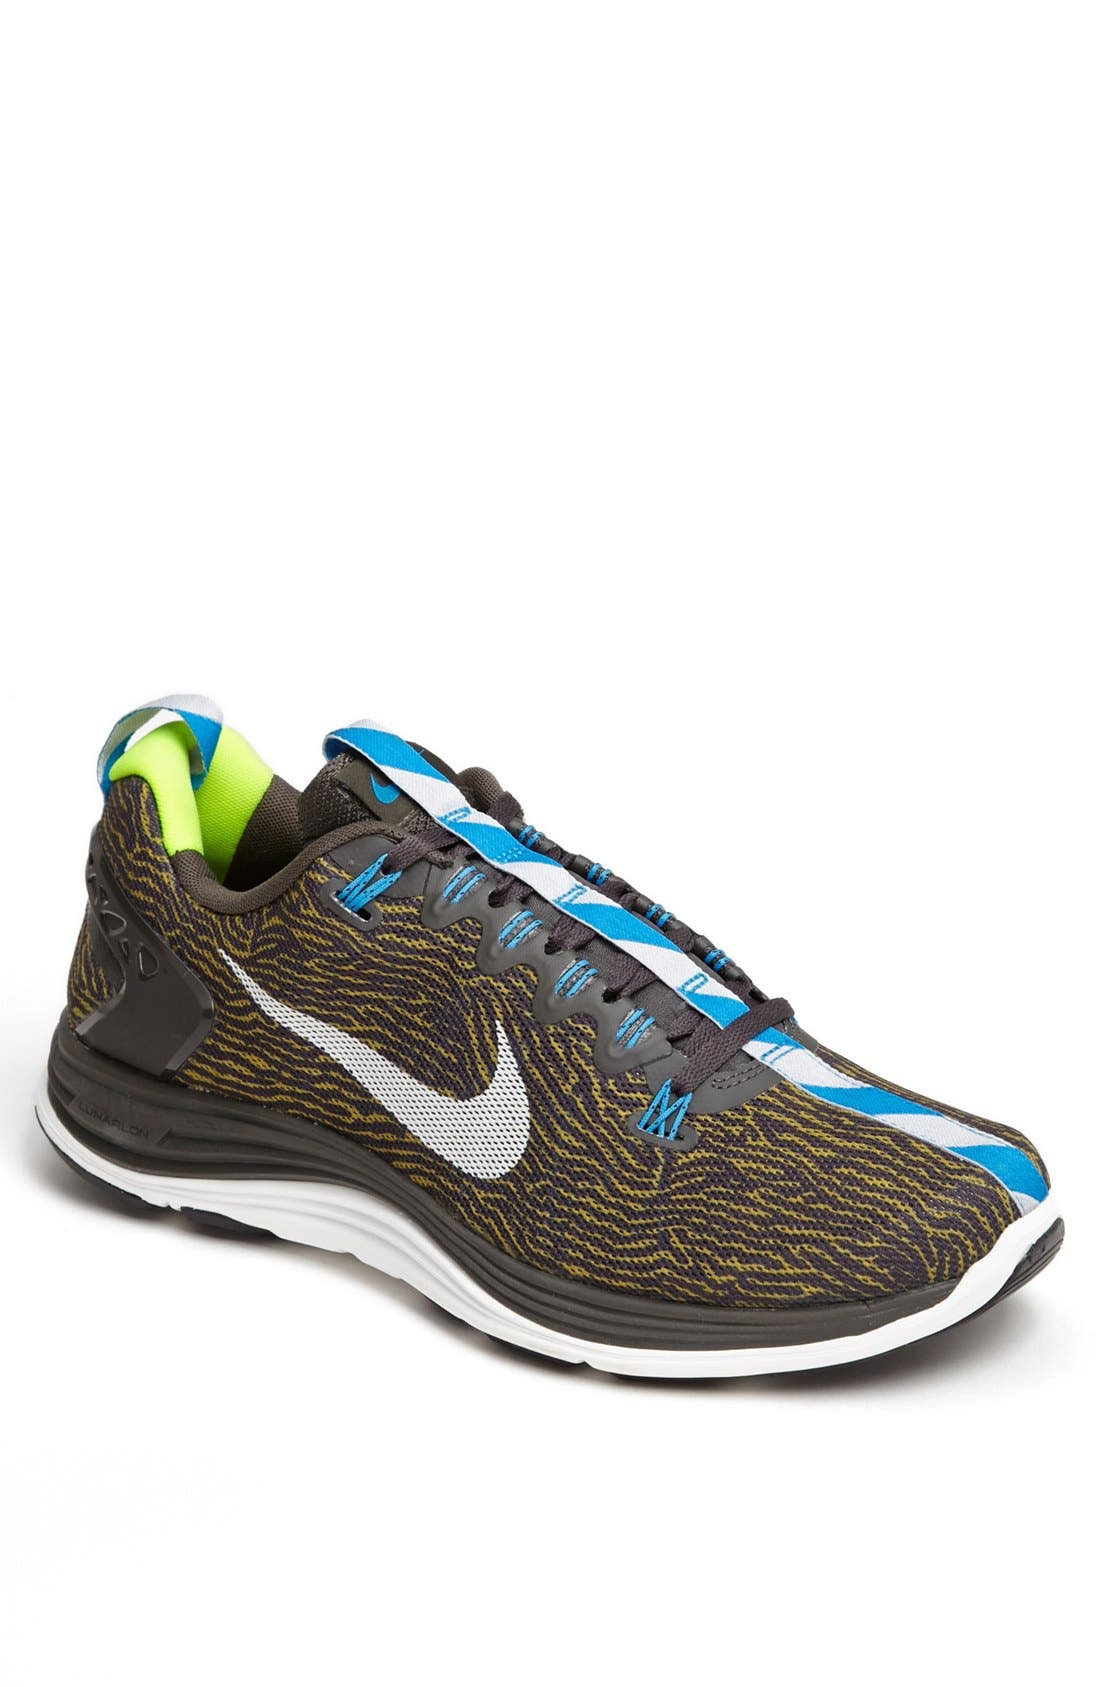 Alternate Image 1 Selected - Nike 'LunarGlide+ 5 EXT Premium' Training Shoe